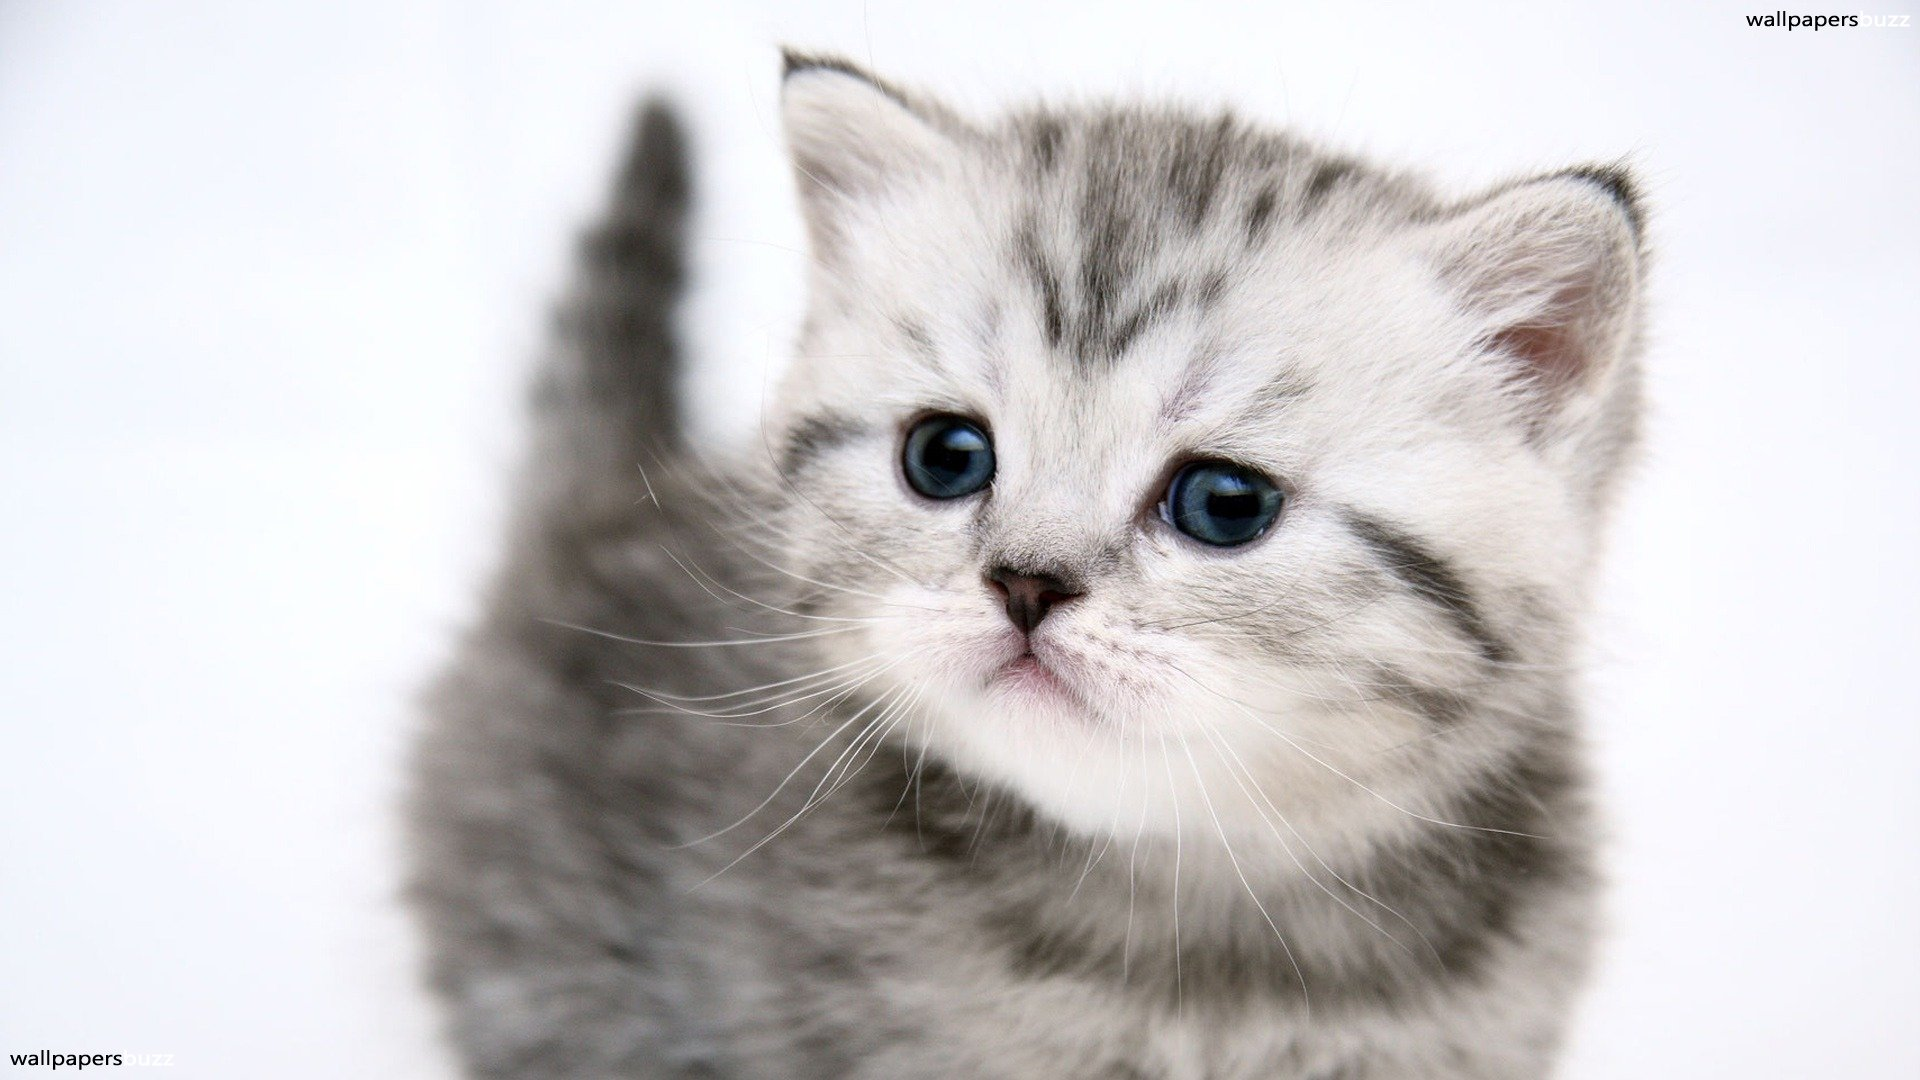 Cat wallpapers high quality download free - Free wallpaper of kittens ...